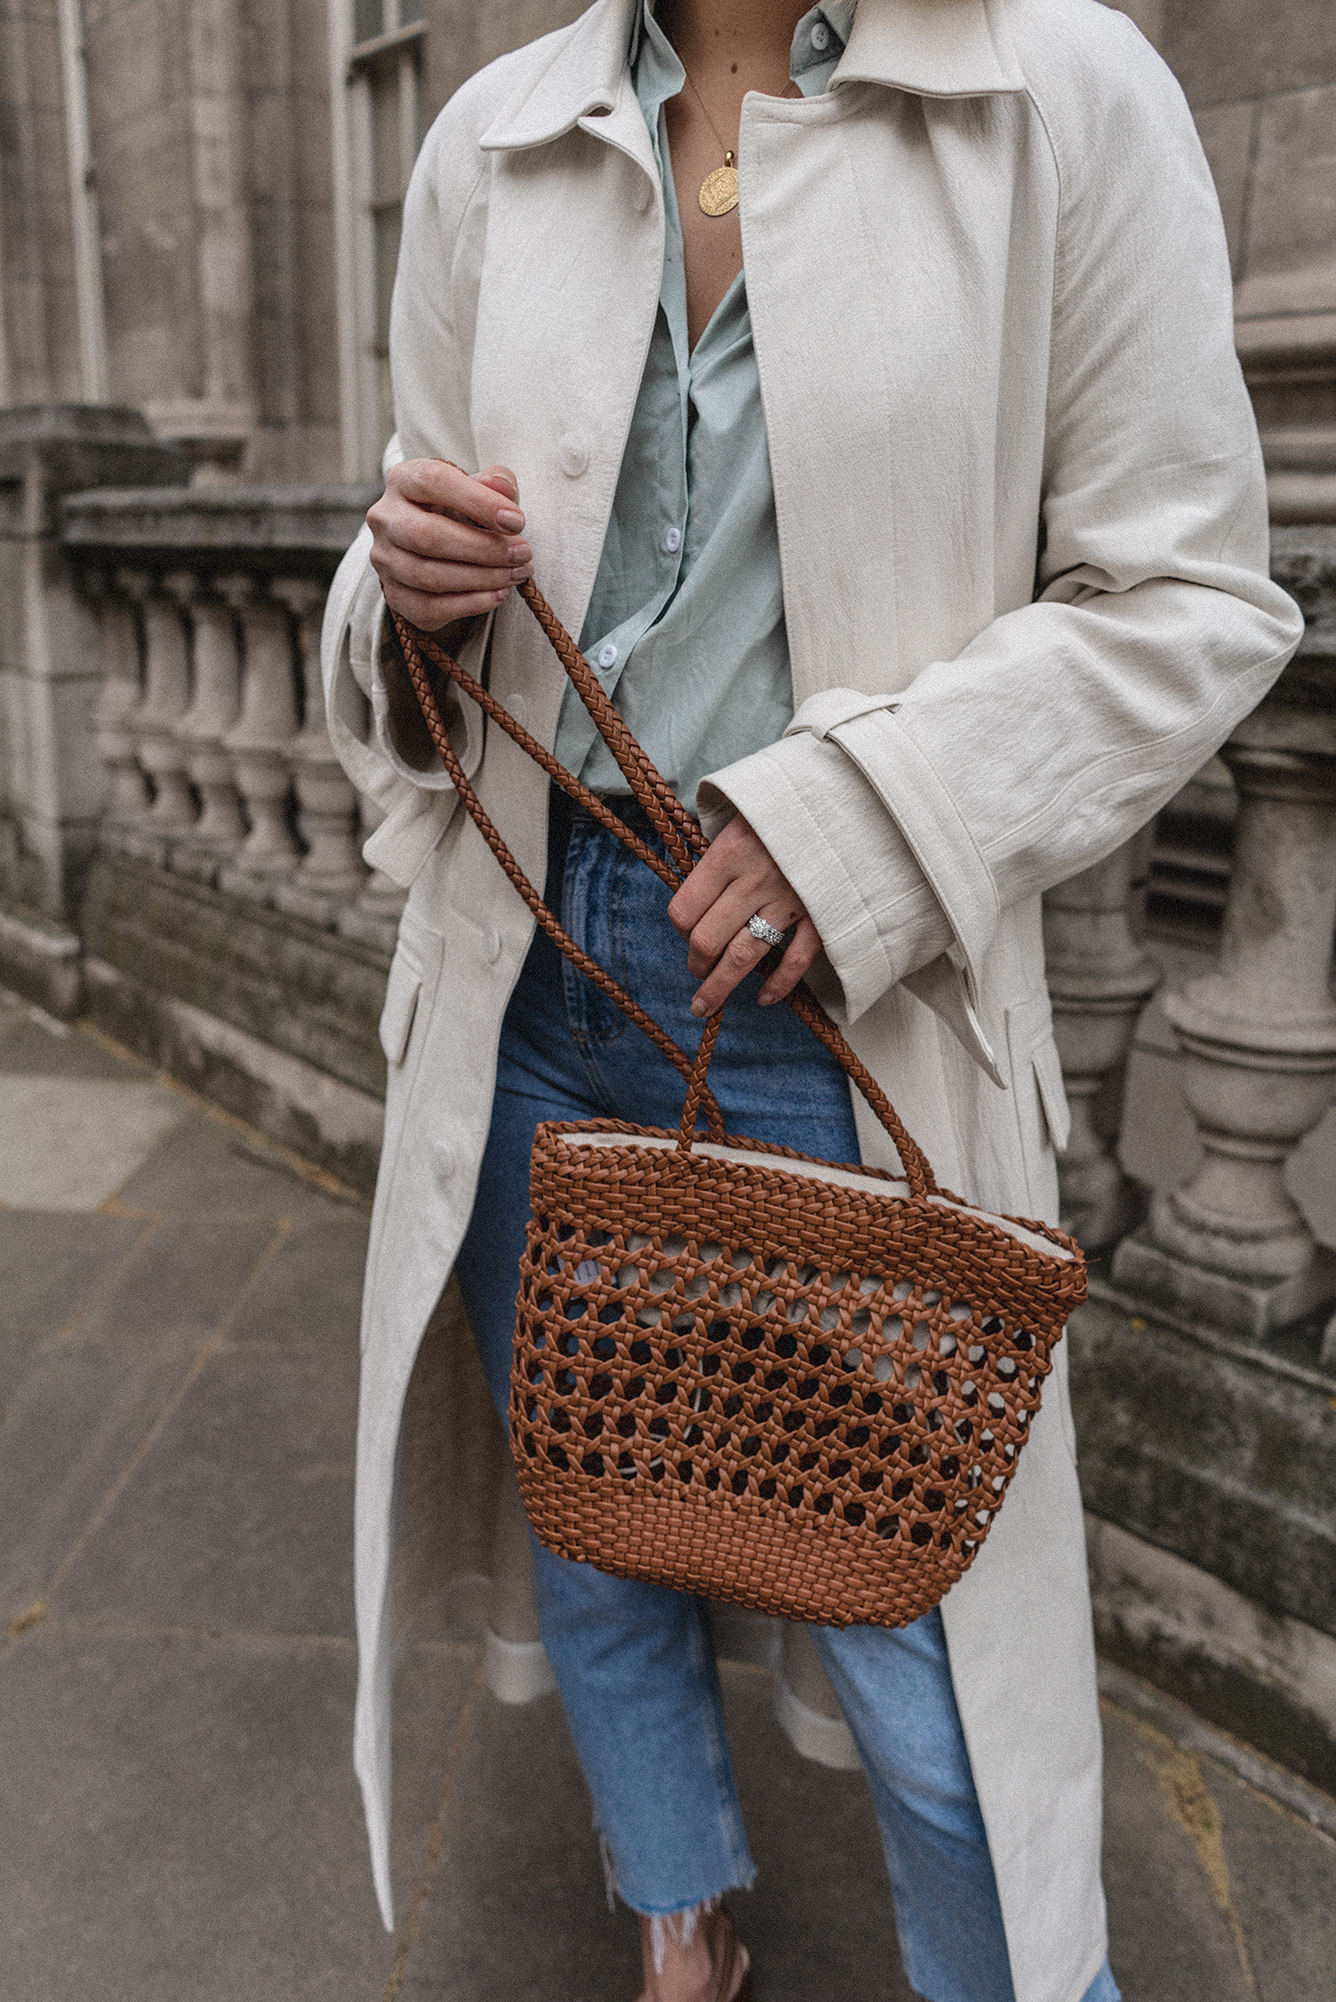 Emma Hill style, off white duster trench coat, wint green shirt, light wash jeans, tan leather woven bag, gold mini marie necklace, Spring outfit